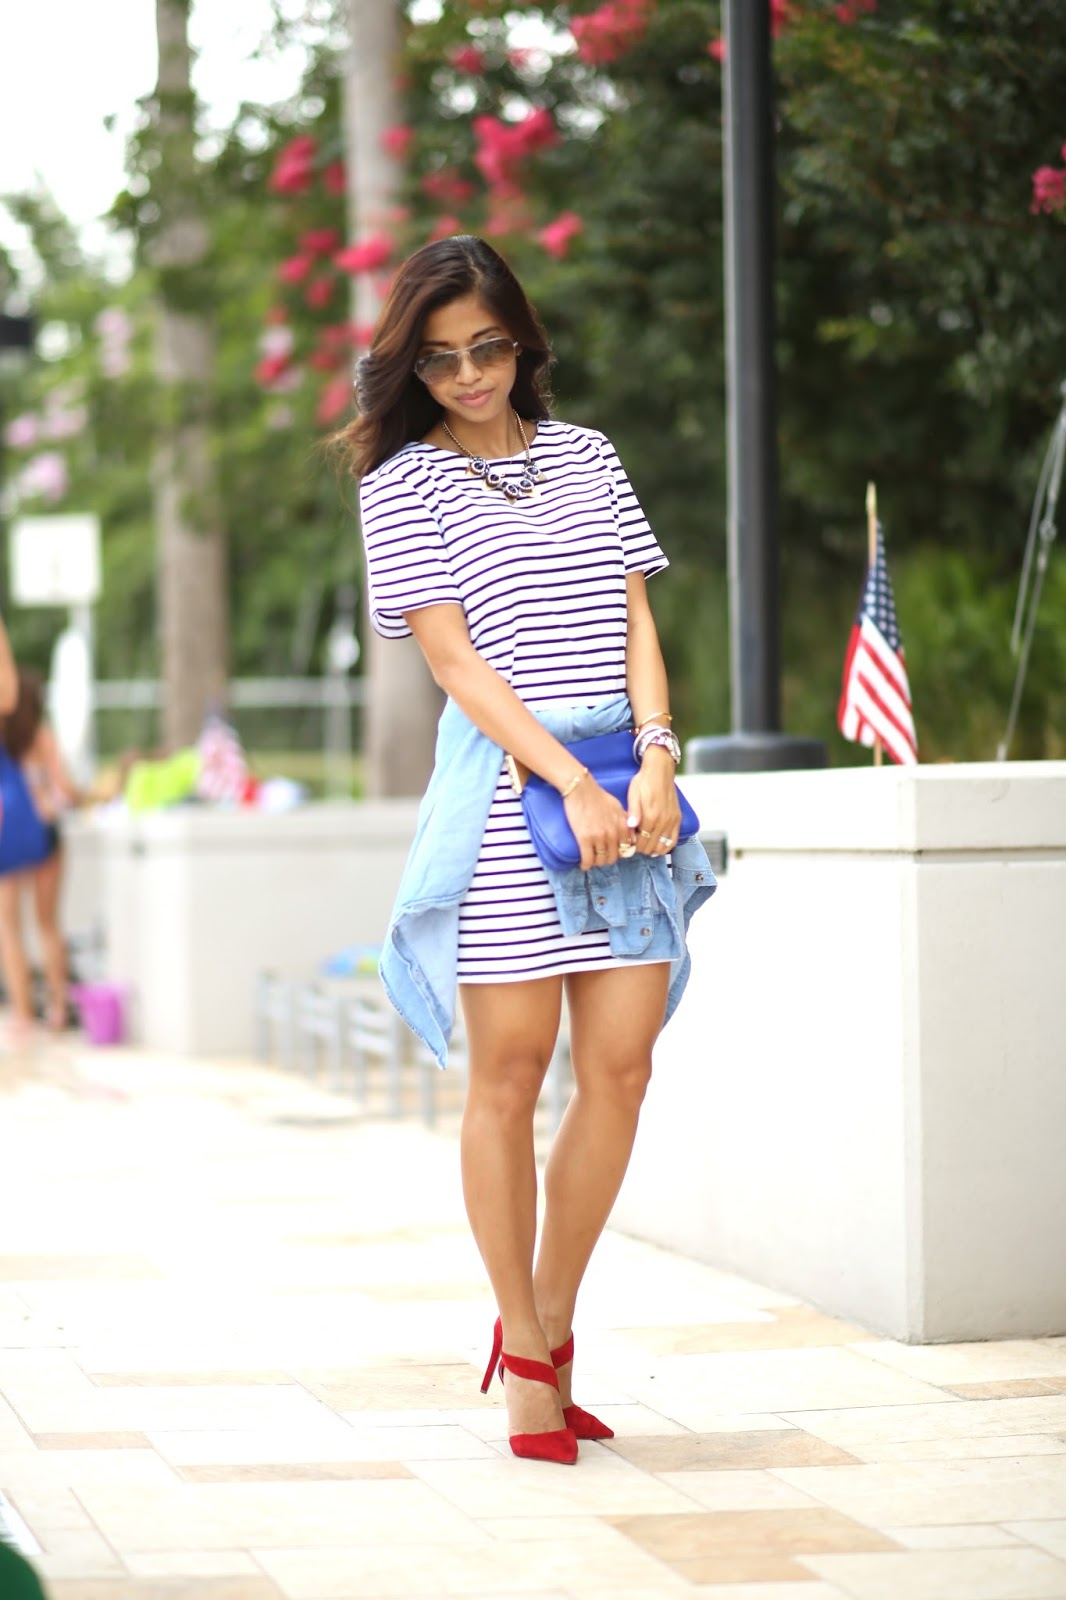 Americana Classic Stripes Outfit